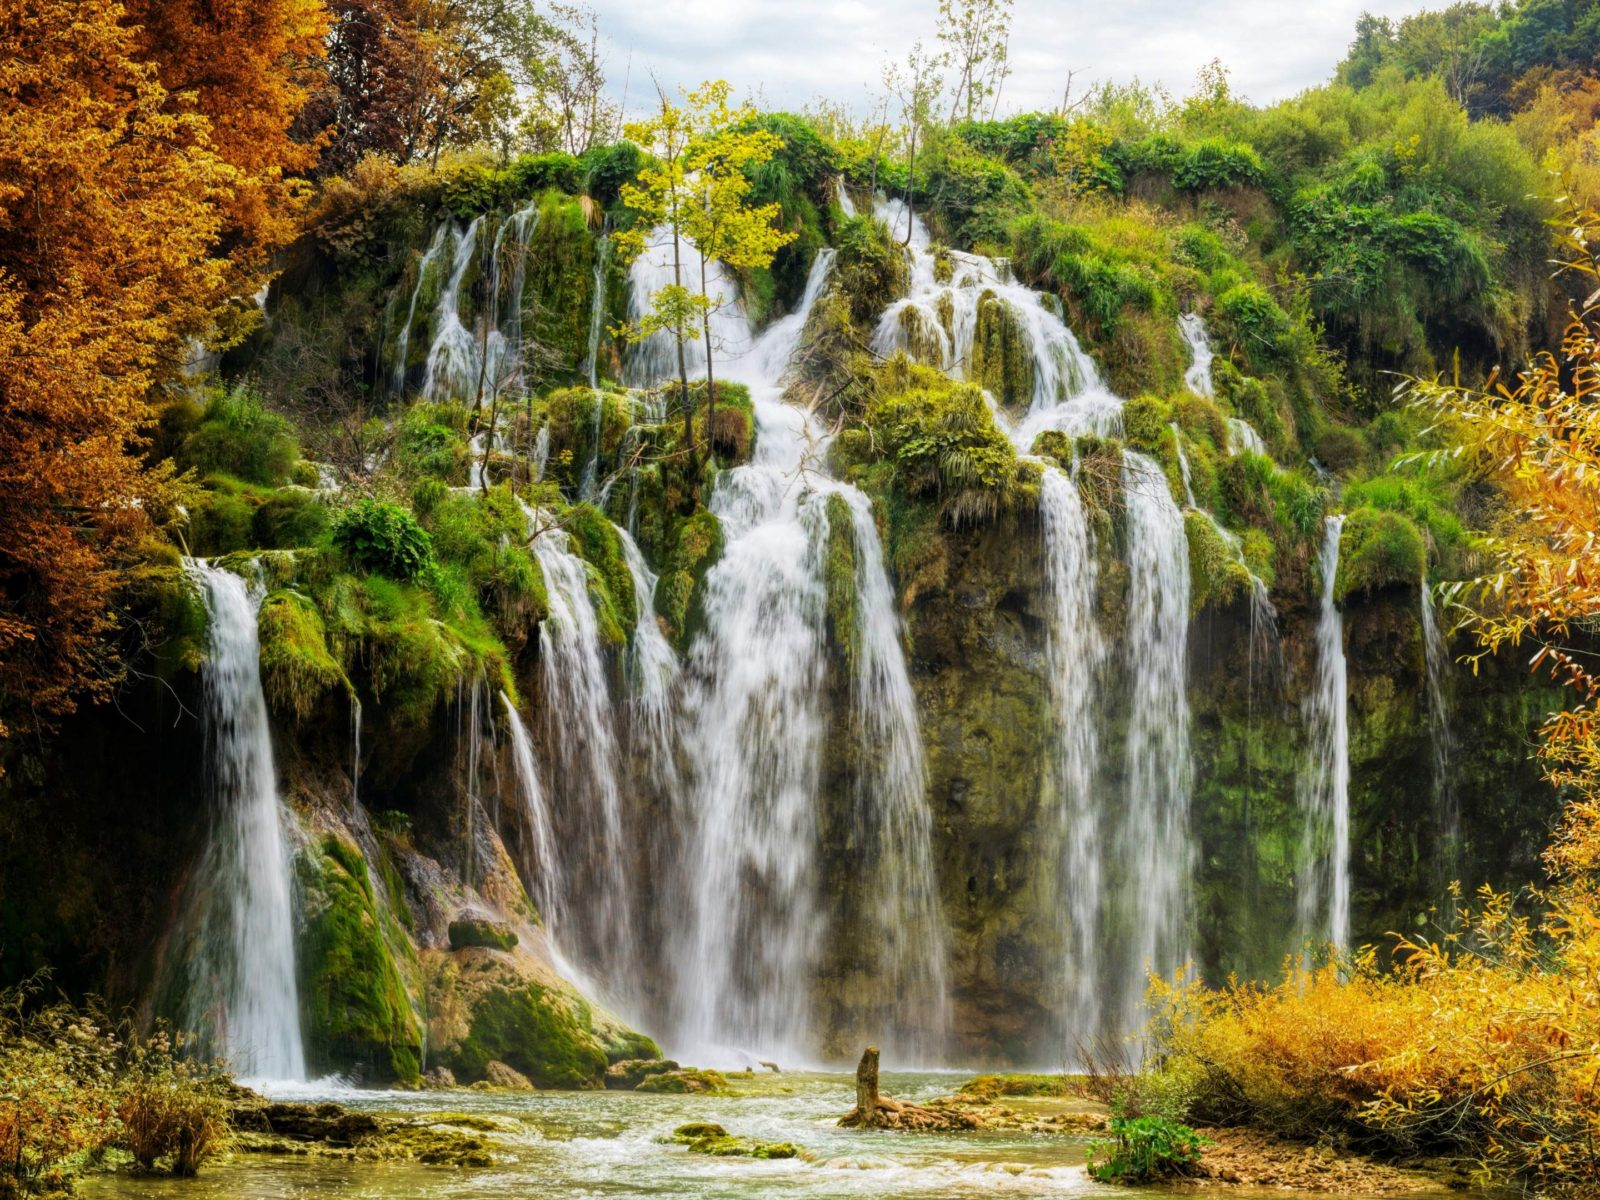 Hd Niagara Falls Wallpaper Plitvice National Park Croatia Autumn Scenery Hd Wallpaper